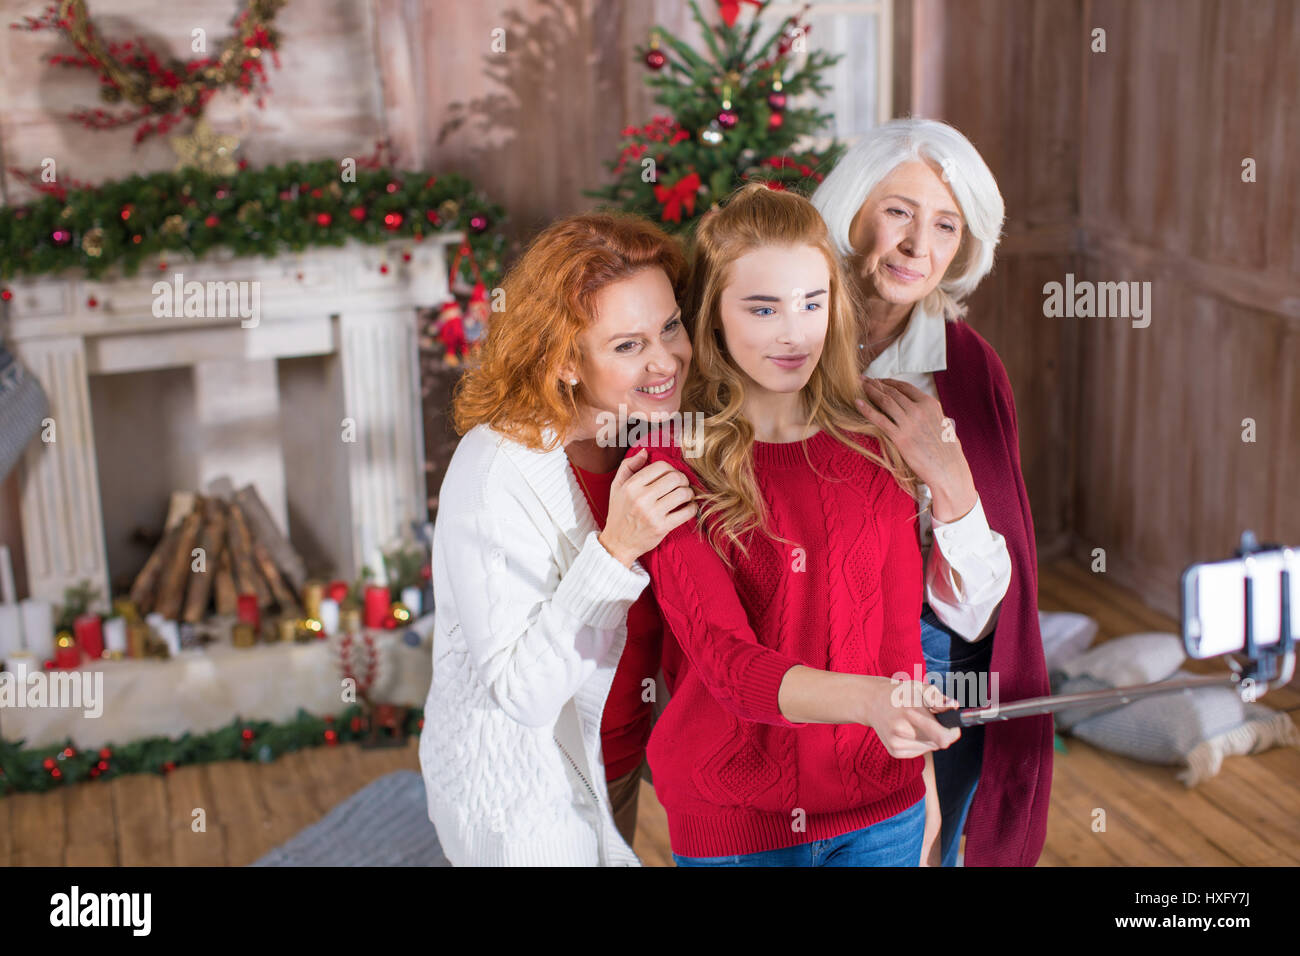 Happy family from three generations taking selfie at christmastime - Stock Image